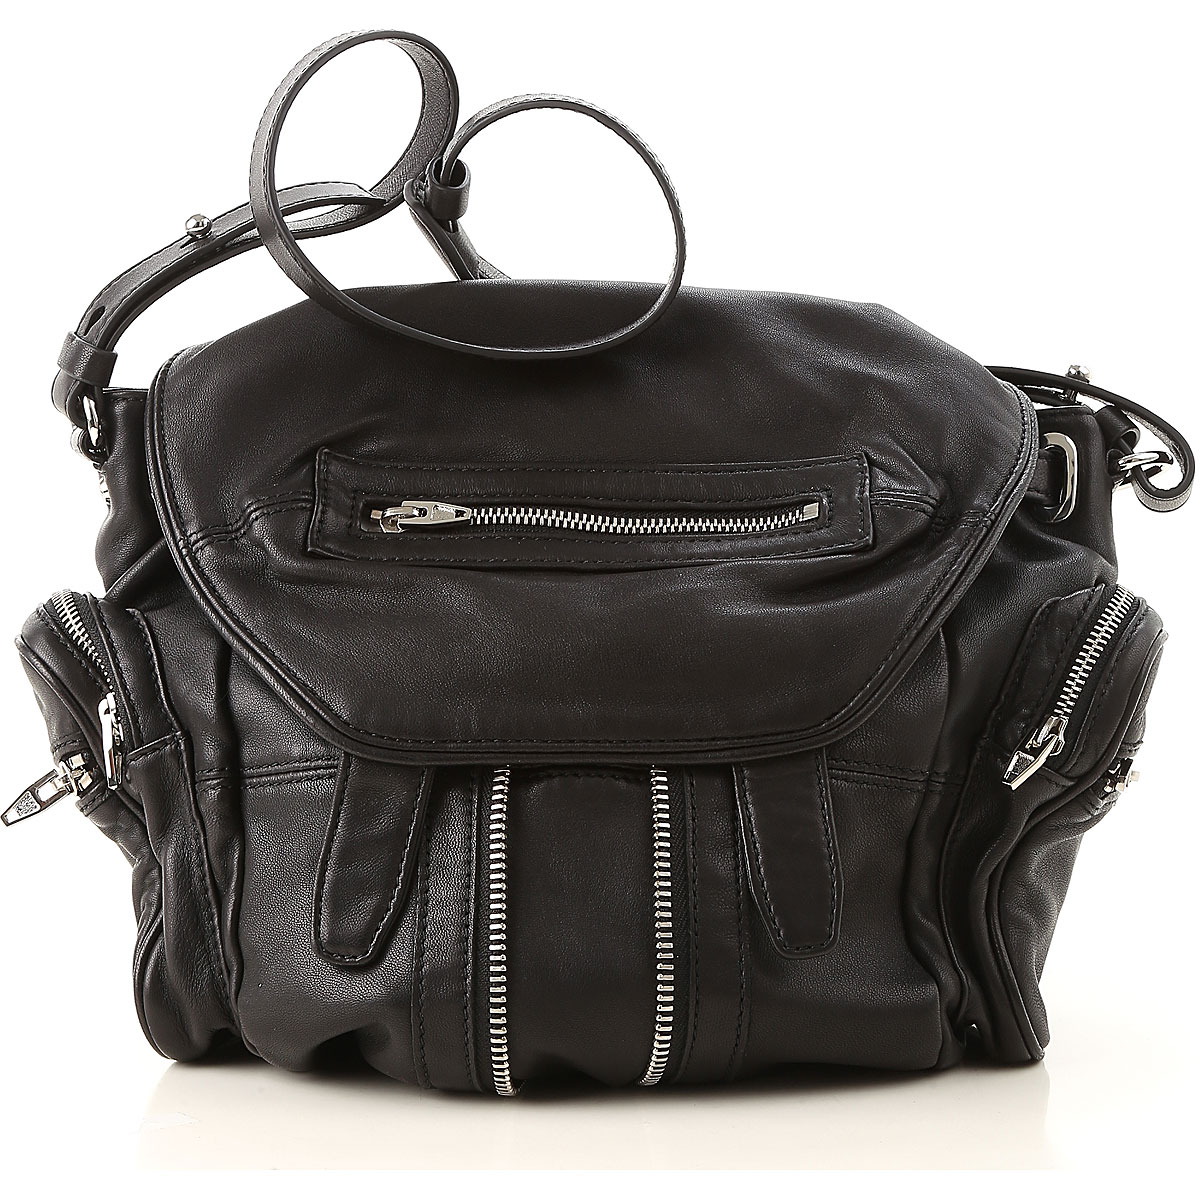 Image of Alexander Wang Backpack for Women, Black, Leather, 2017